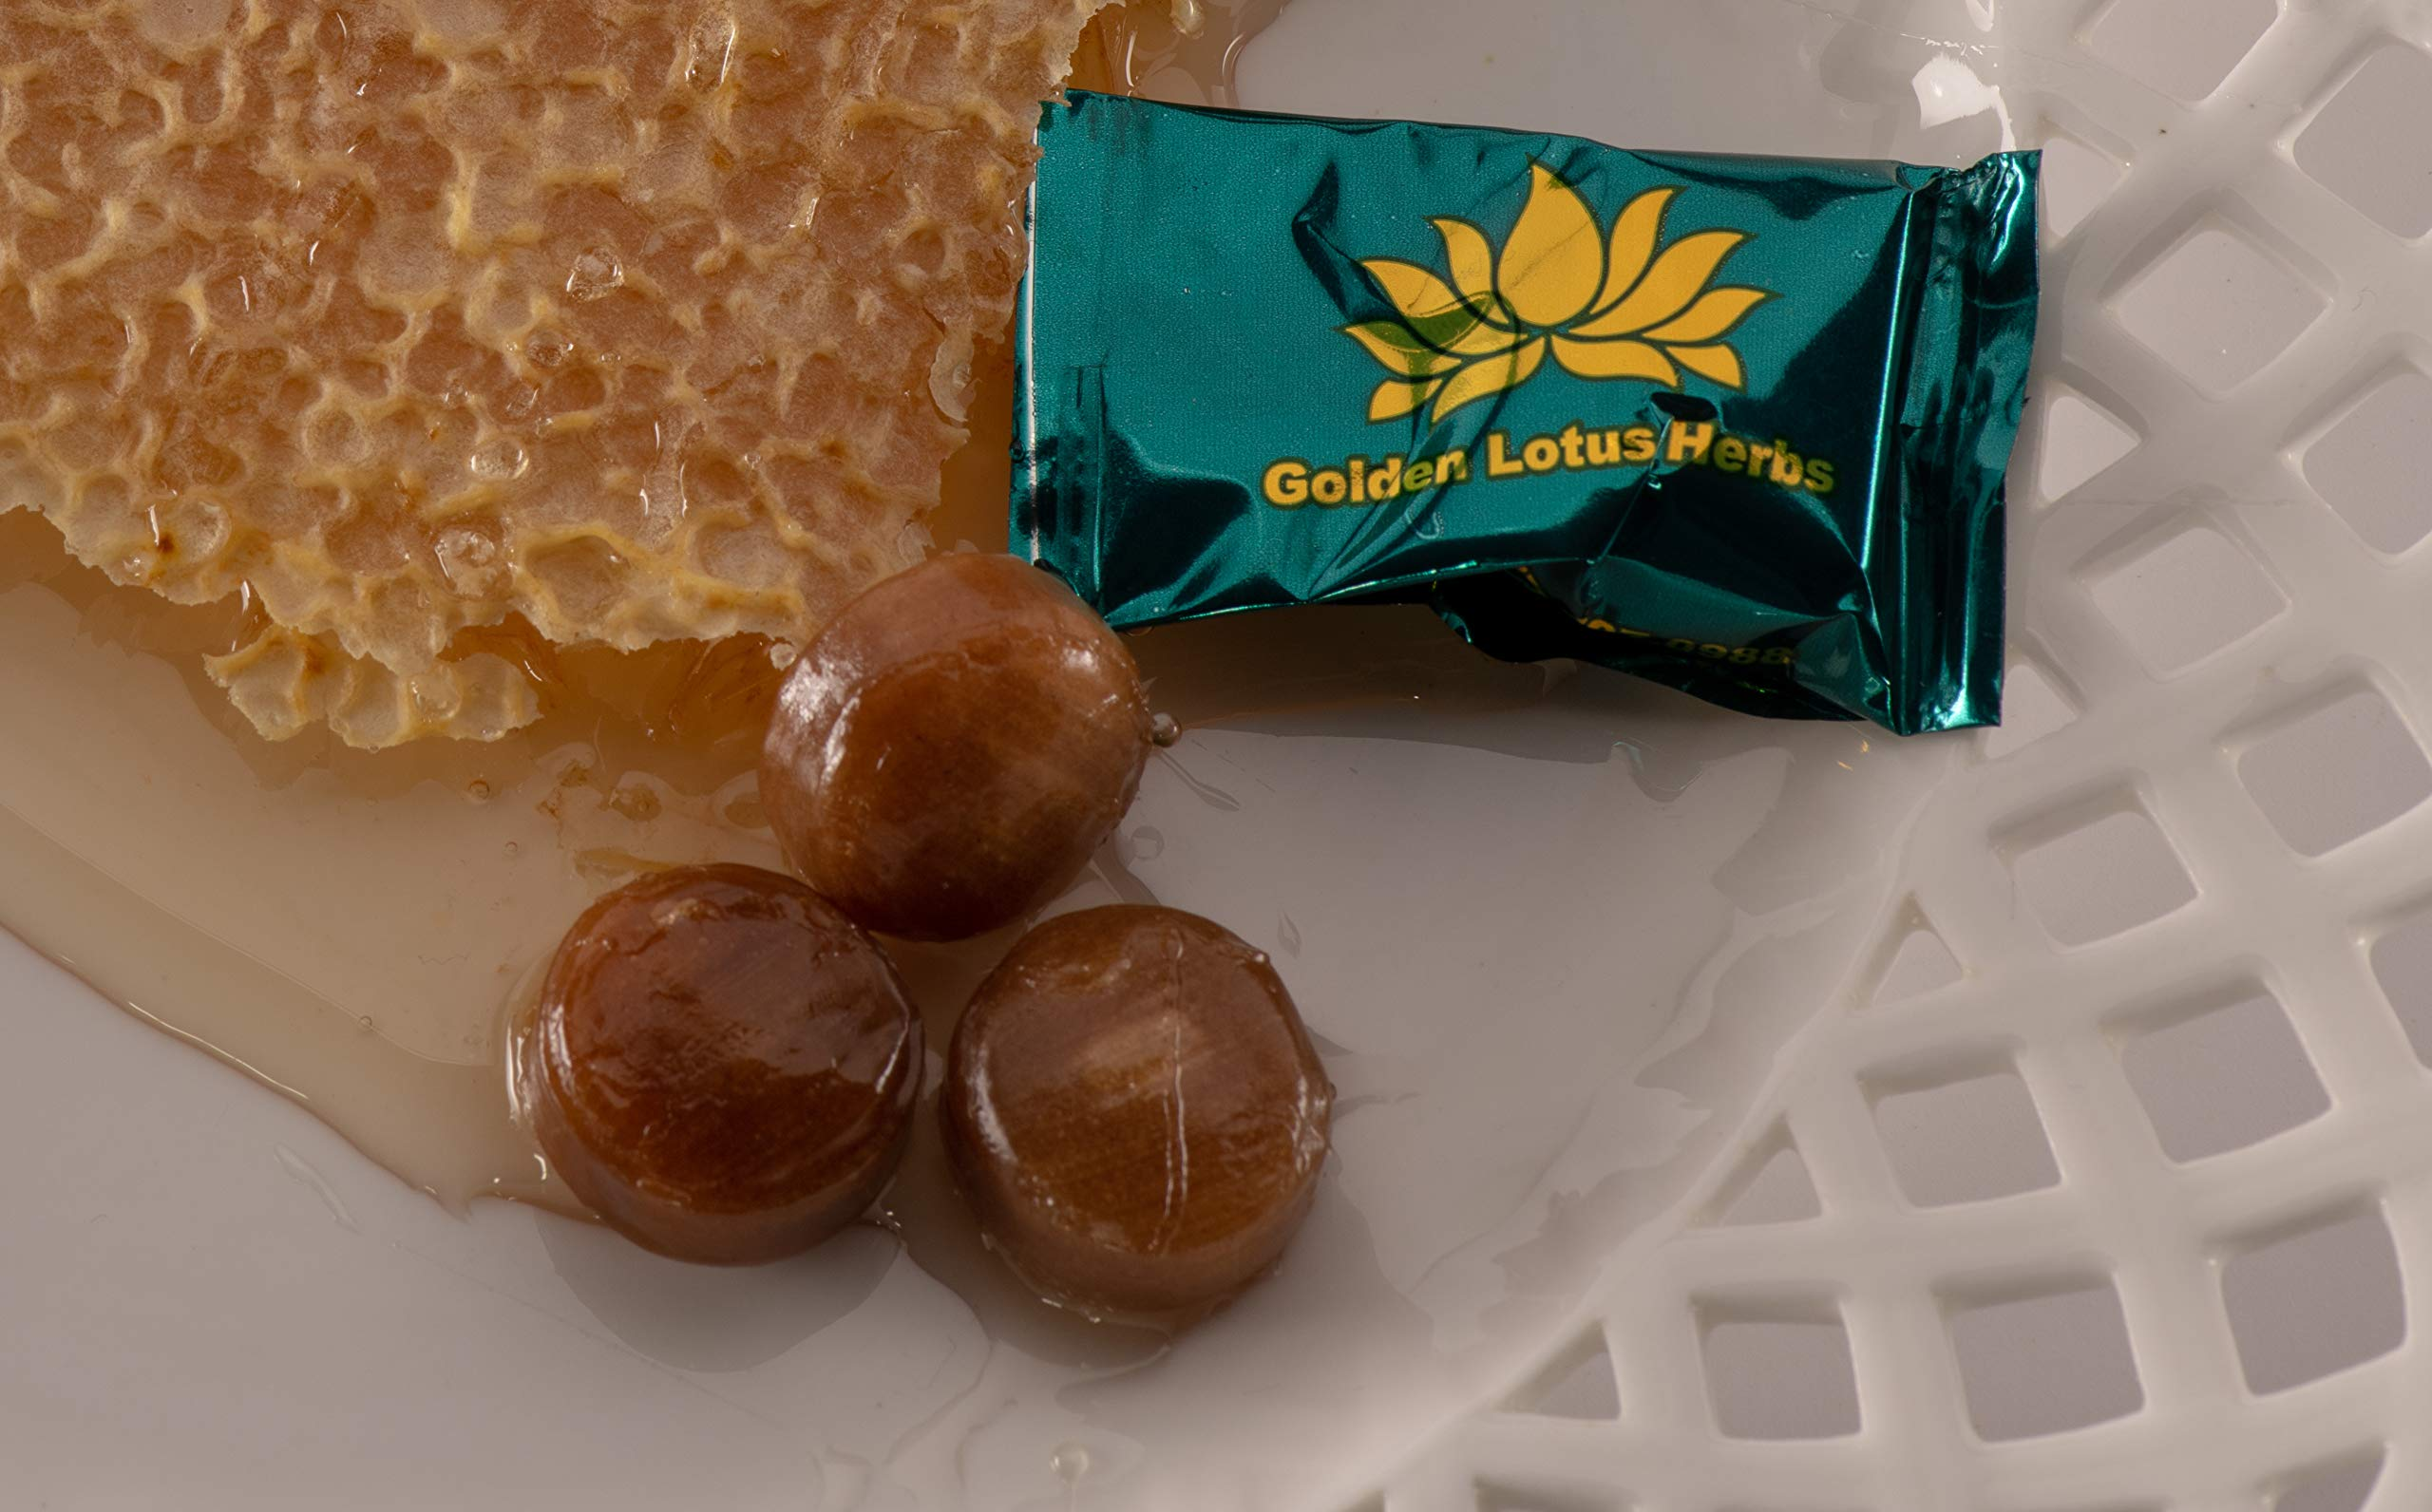 Golden Lotus Herbs Organic Lung and Throat Herbal Lozenges (6 Pack/120 Cough Drops)